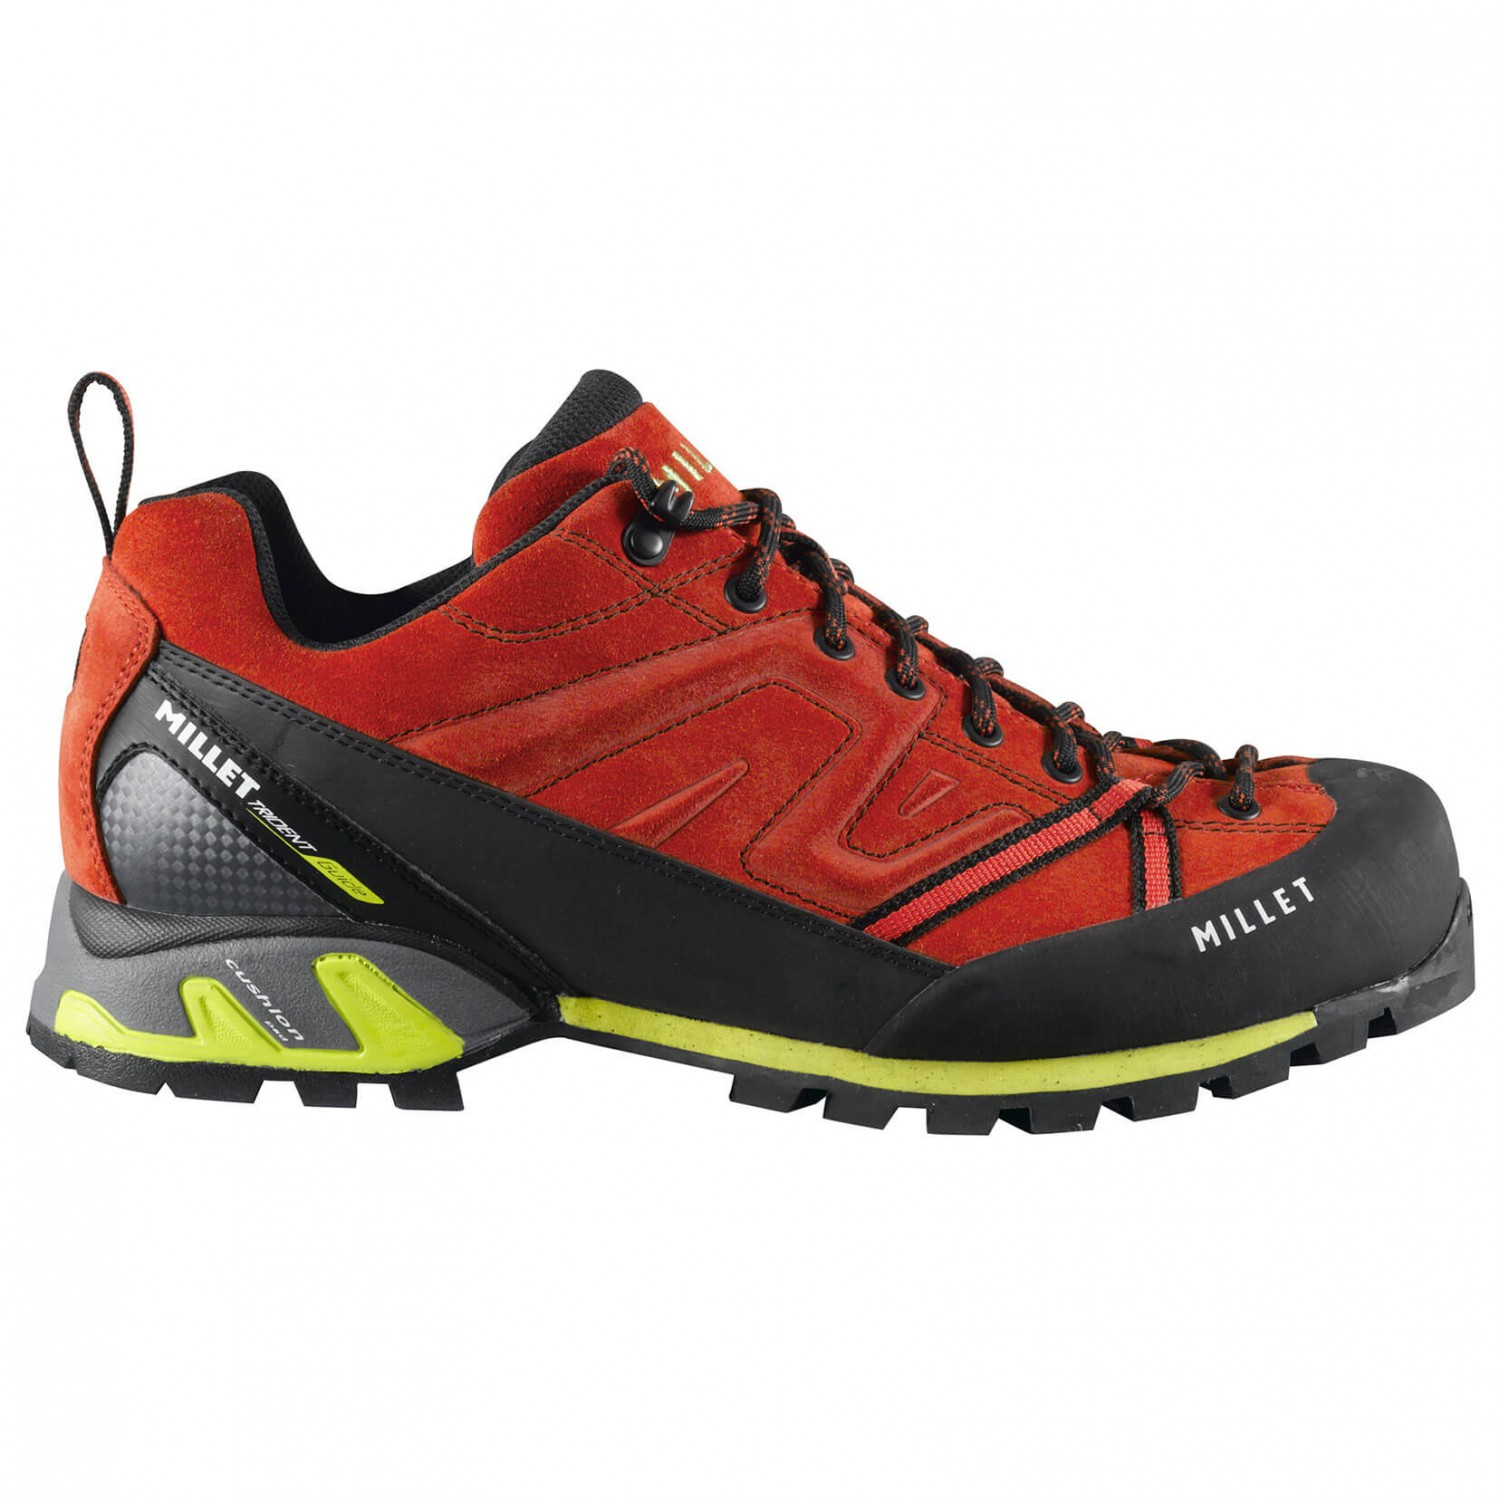 Millet - Trident Guide - Approachschuhe Red / Acid Green